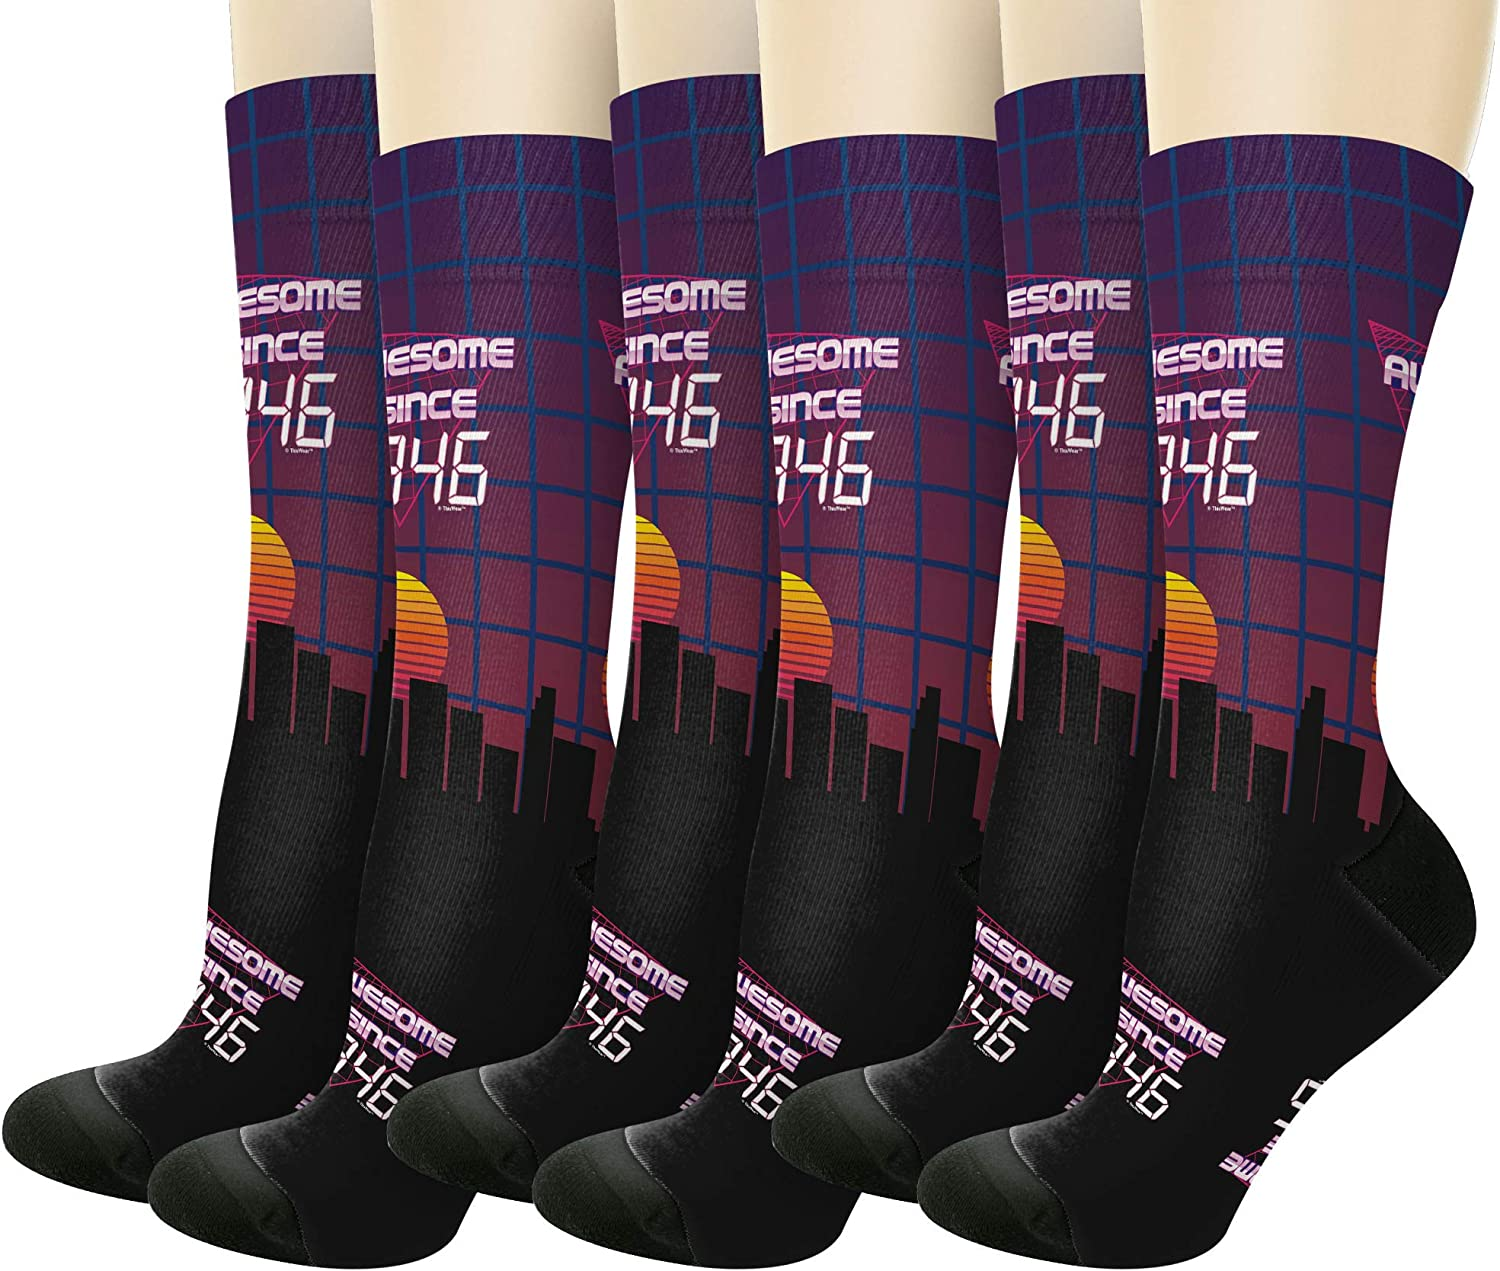 75th Birthday Awesome Since 1946 Novelty Crew Socks